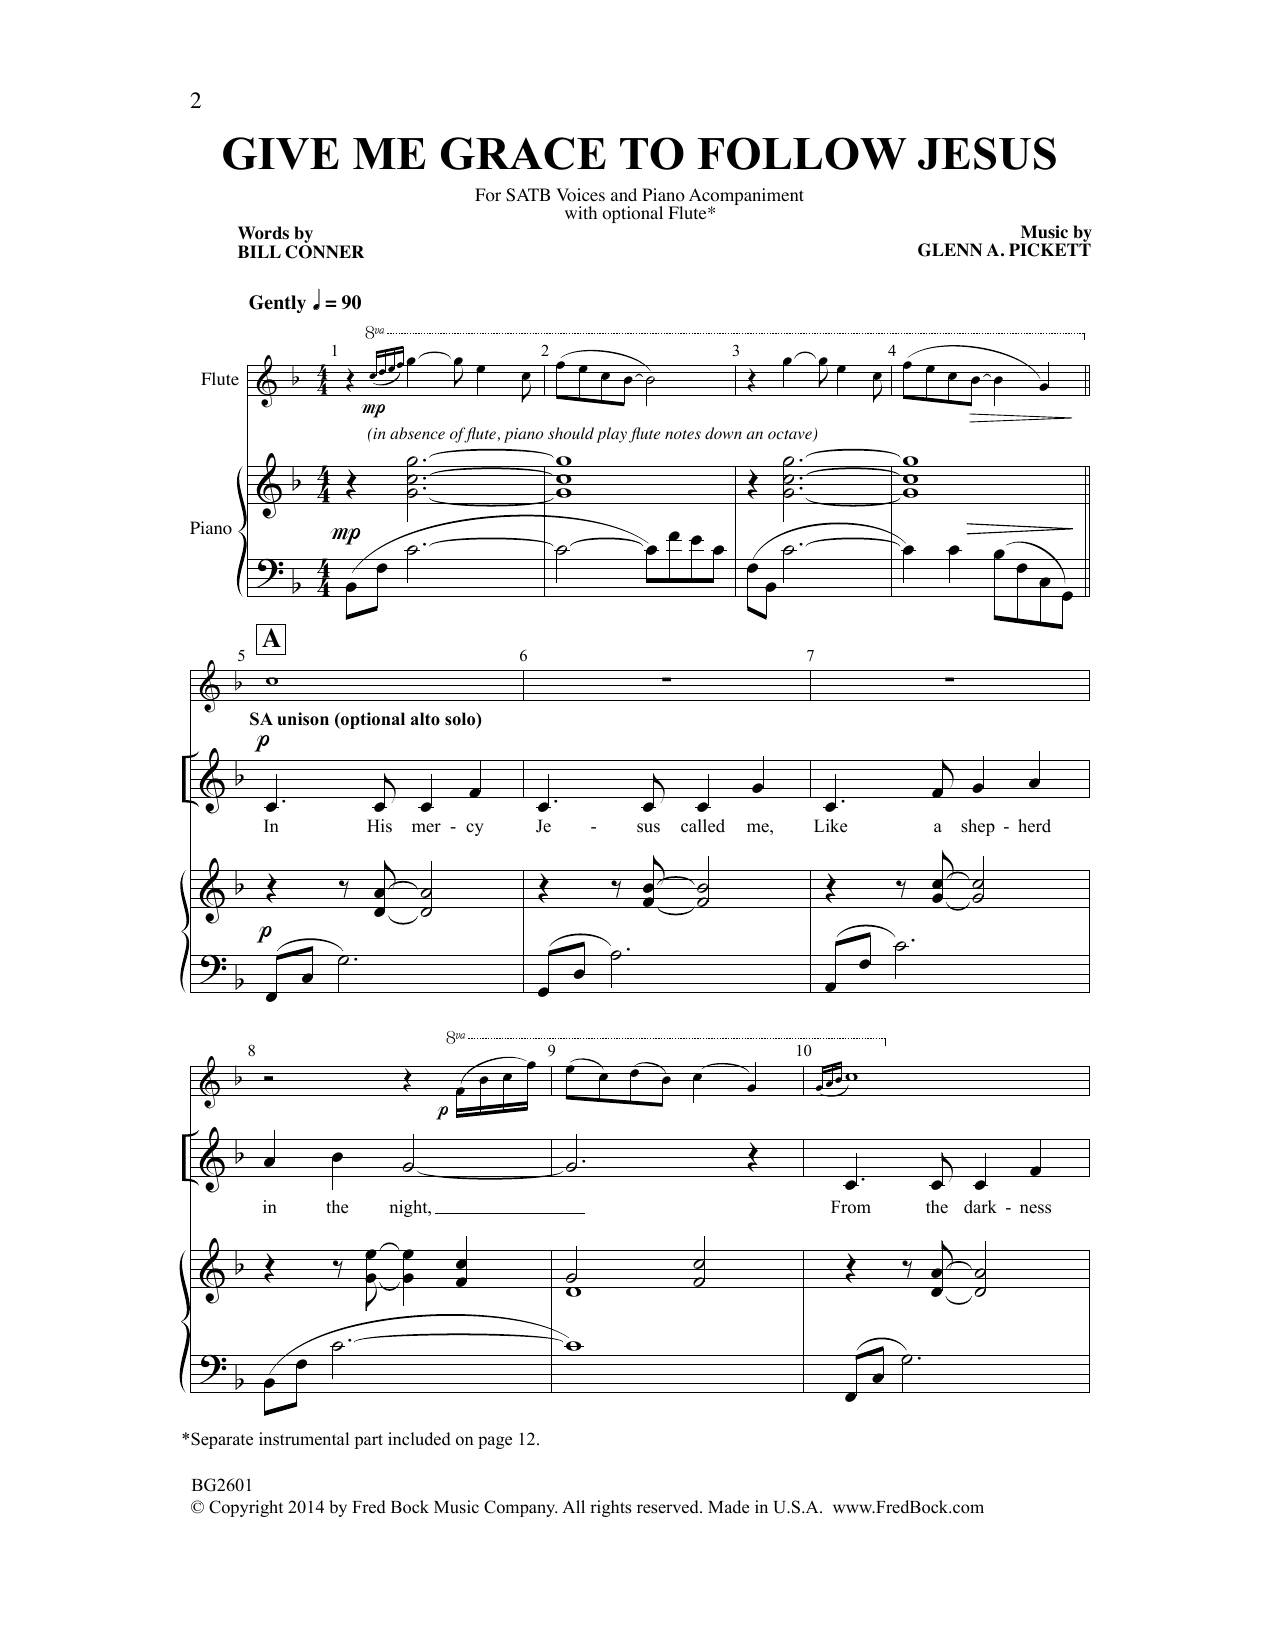 Sheet Music Digital Files To Print - Licensed Choral Digital Sheet Music